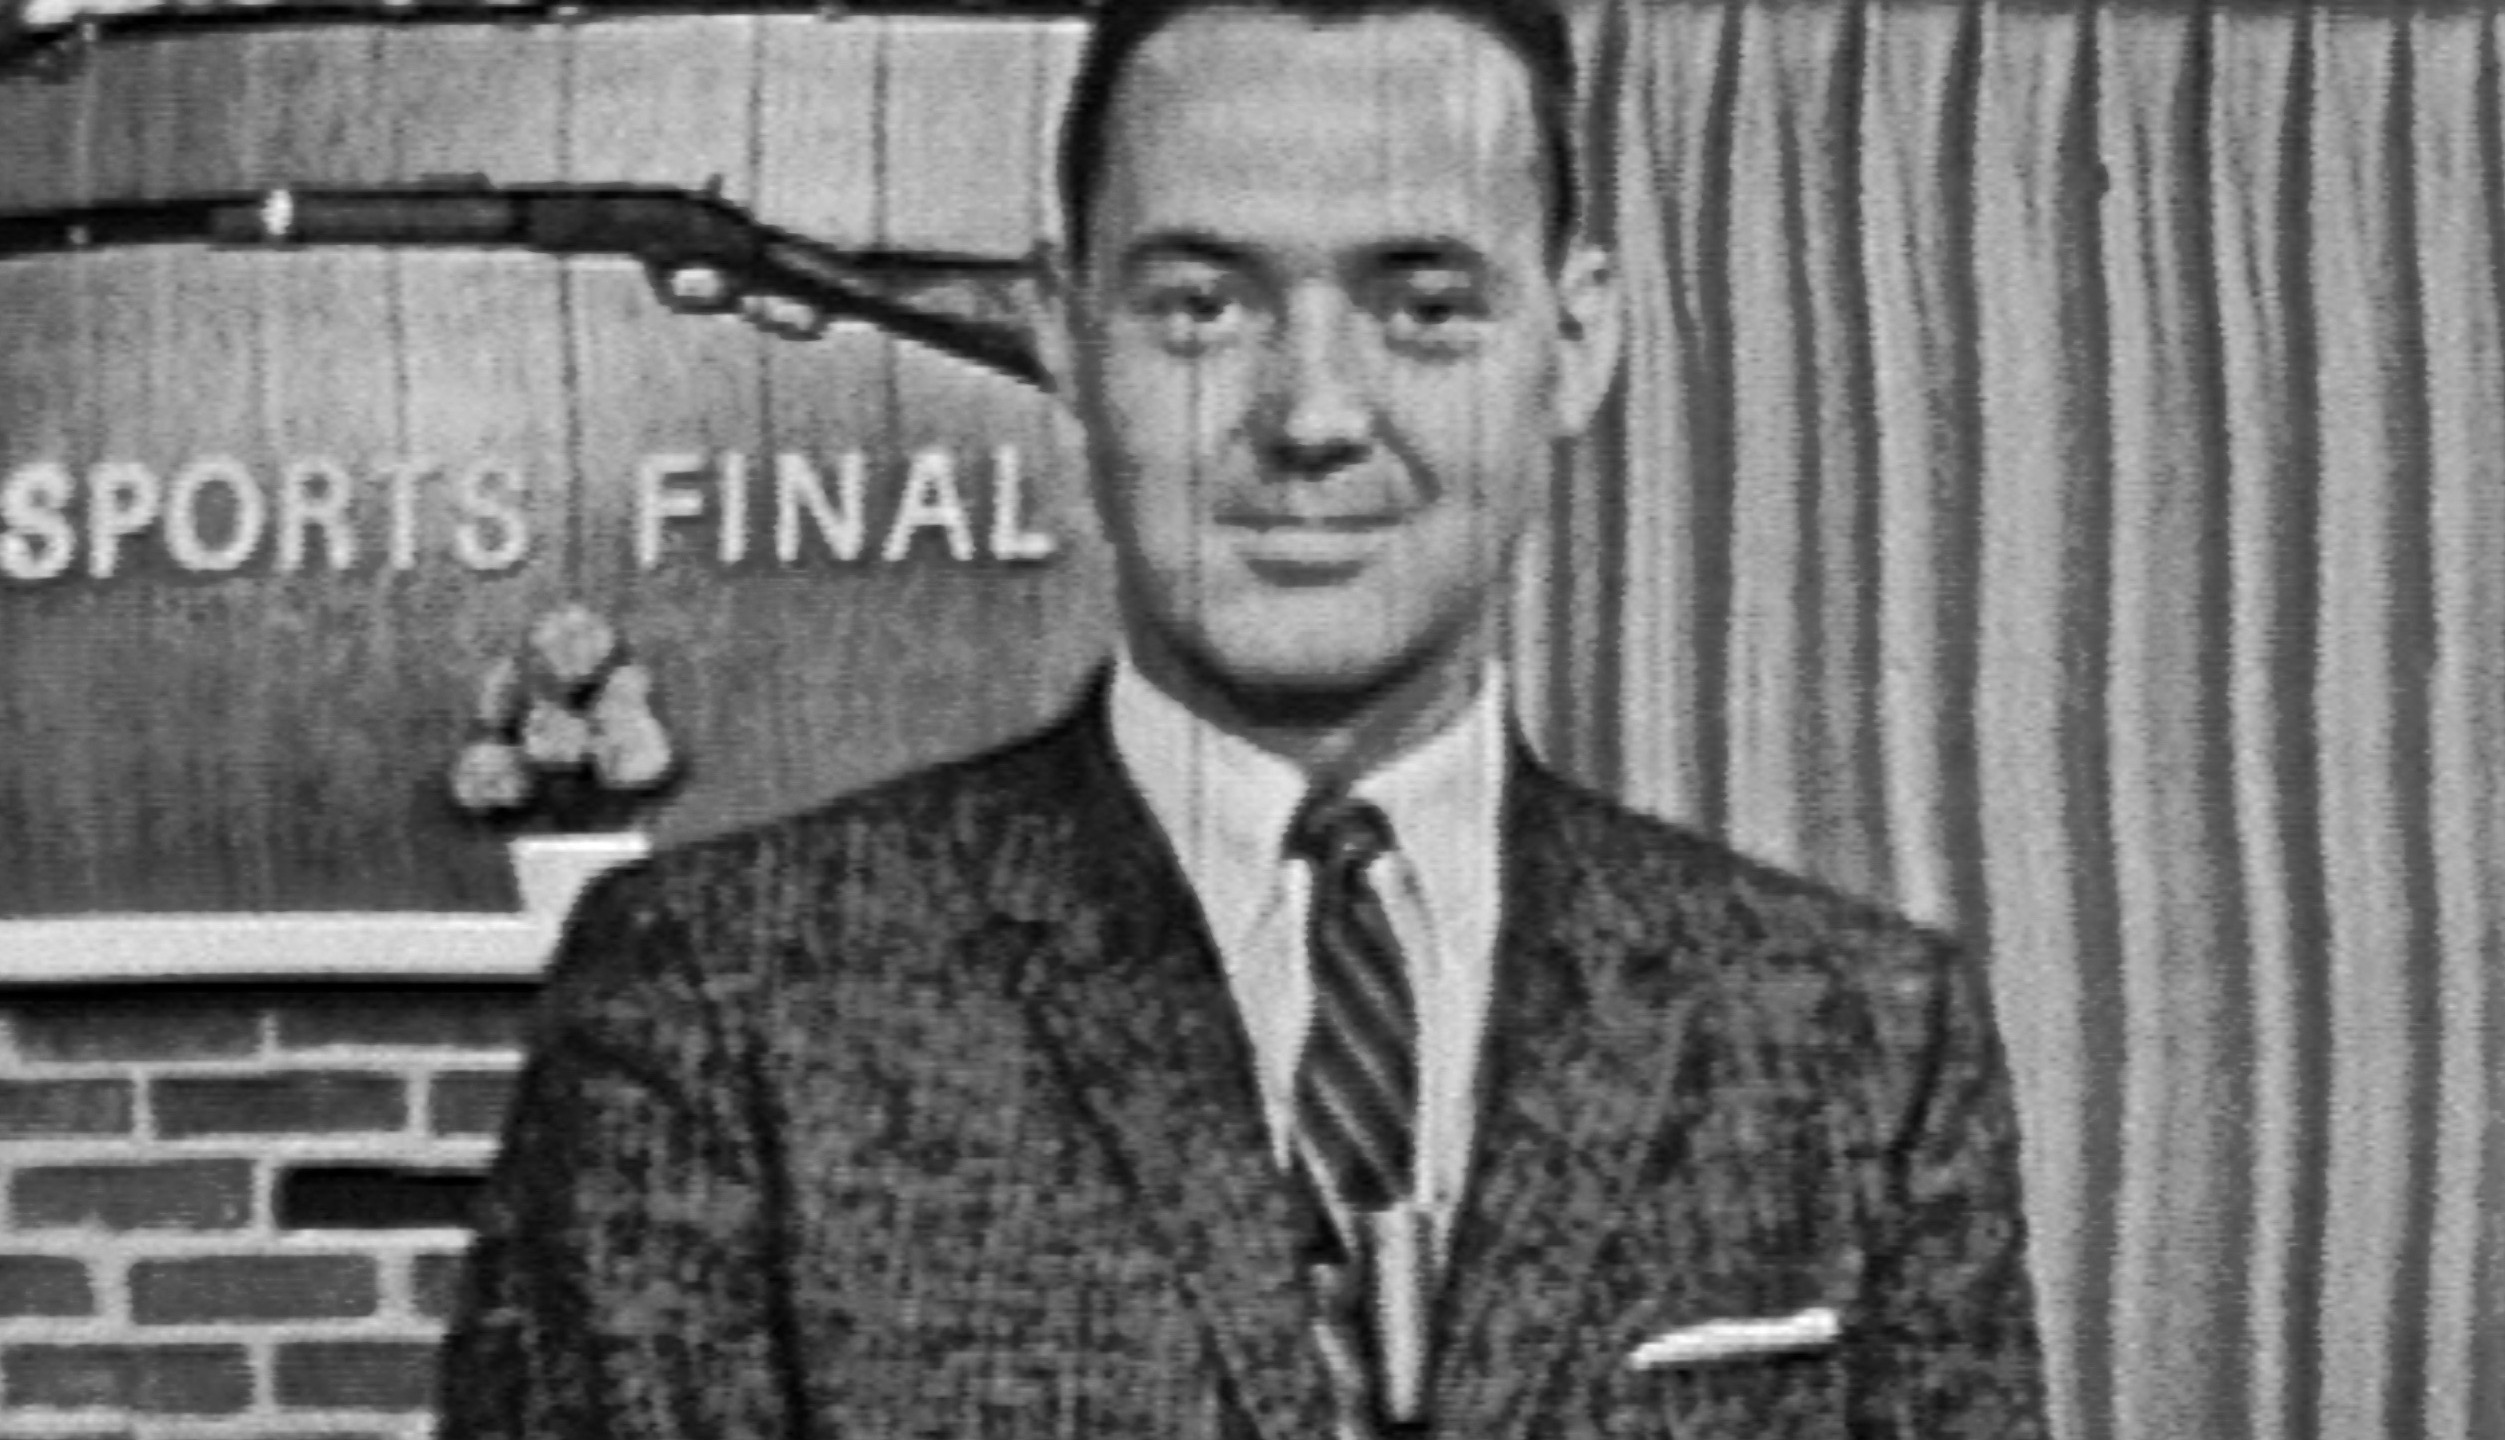 Paul James started doing sports in 1952 at Channel Four_1539062883884.jpg.jpg